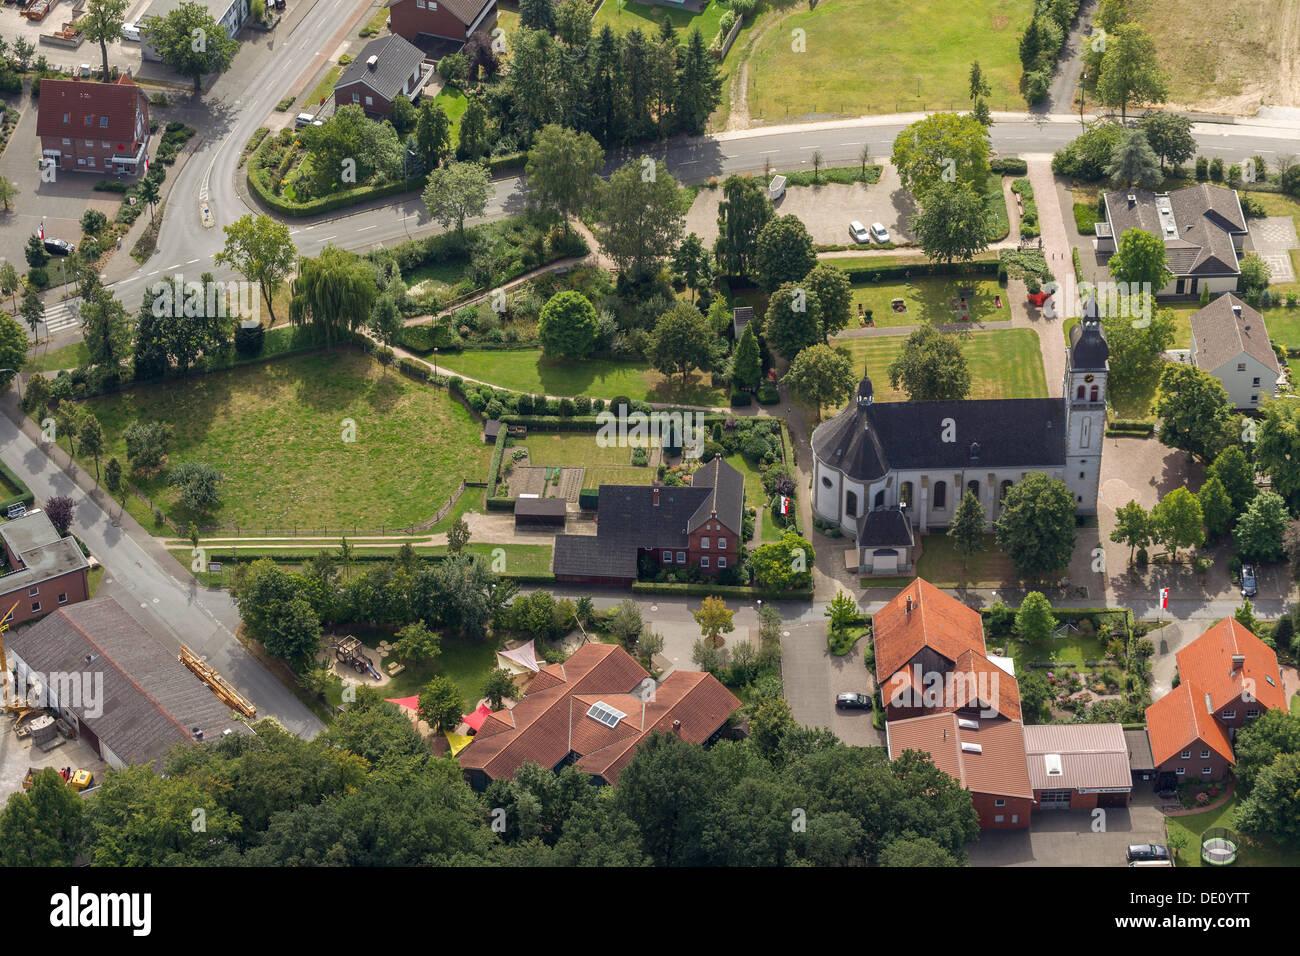 Aerial view, Parish Church of St. Vitus, Sankt Vit, Rheda-Wiedenbrueck, North Rhine-Westphalia - Stock Image